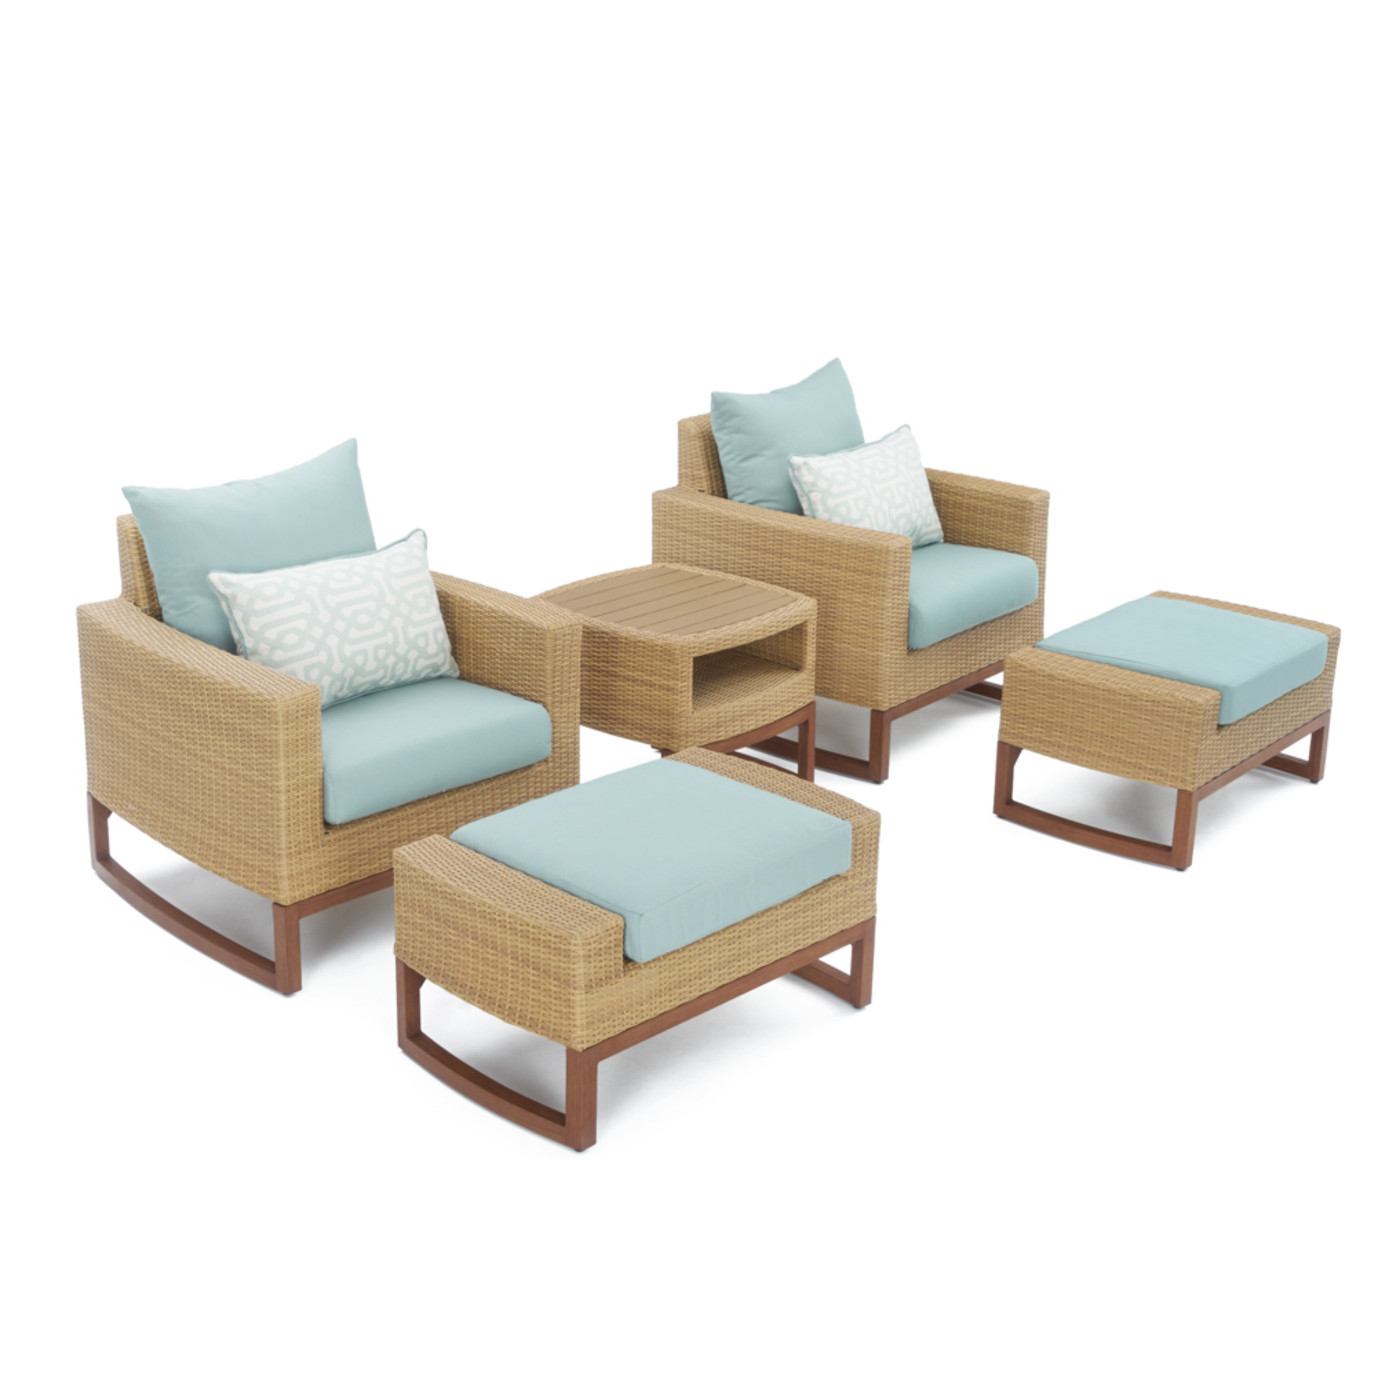 Mili™ 5pc Club Chair & Ottoman Set - Spa Blue